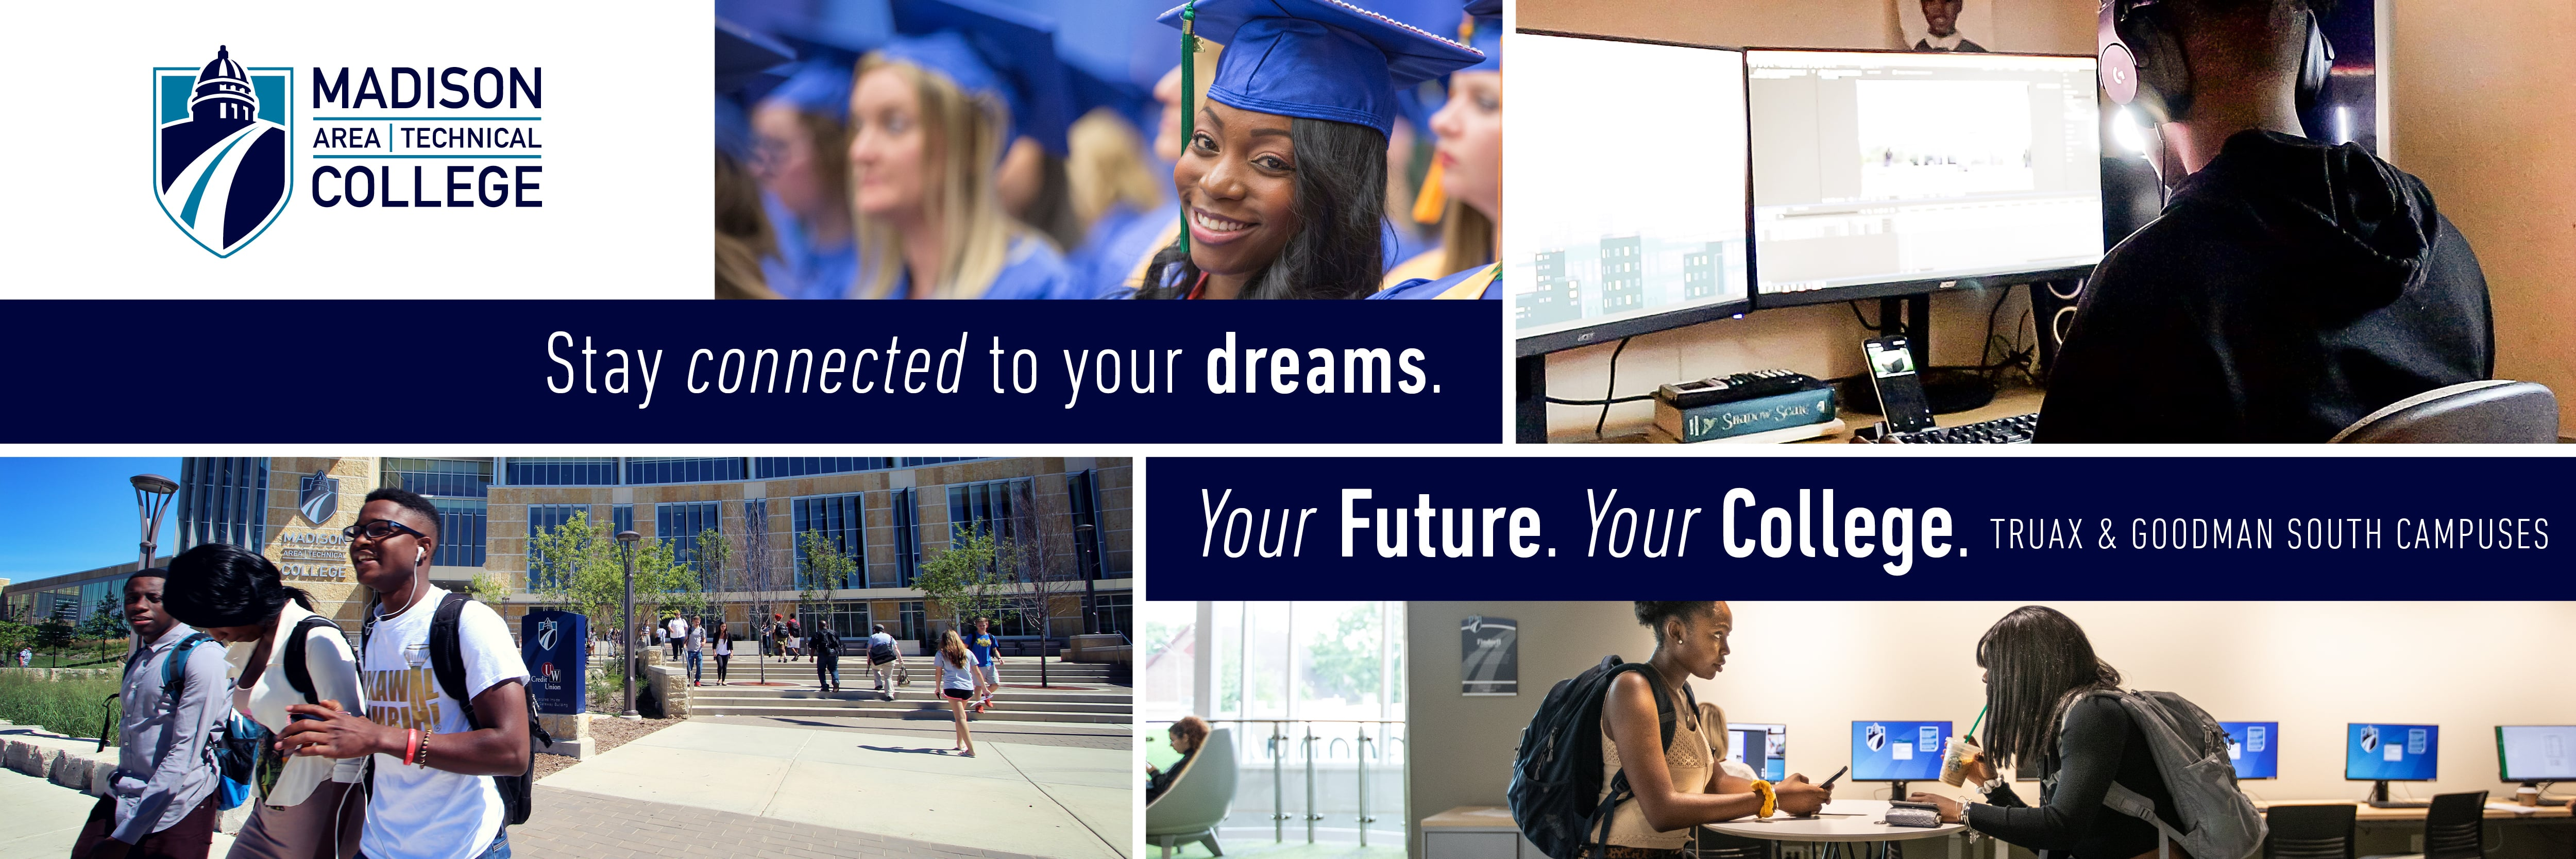 Madison College Students. Your Future. Your College.